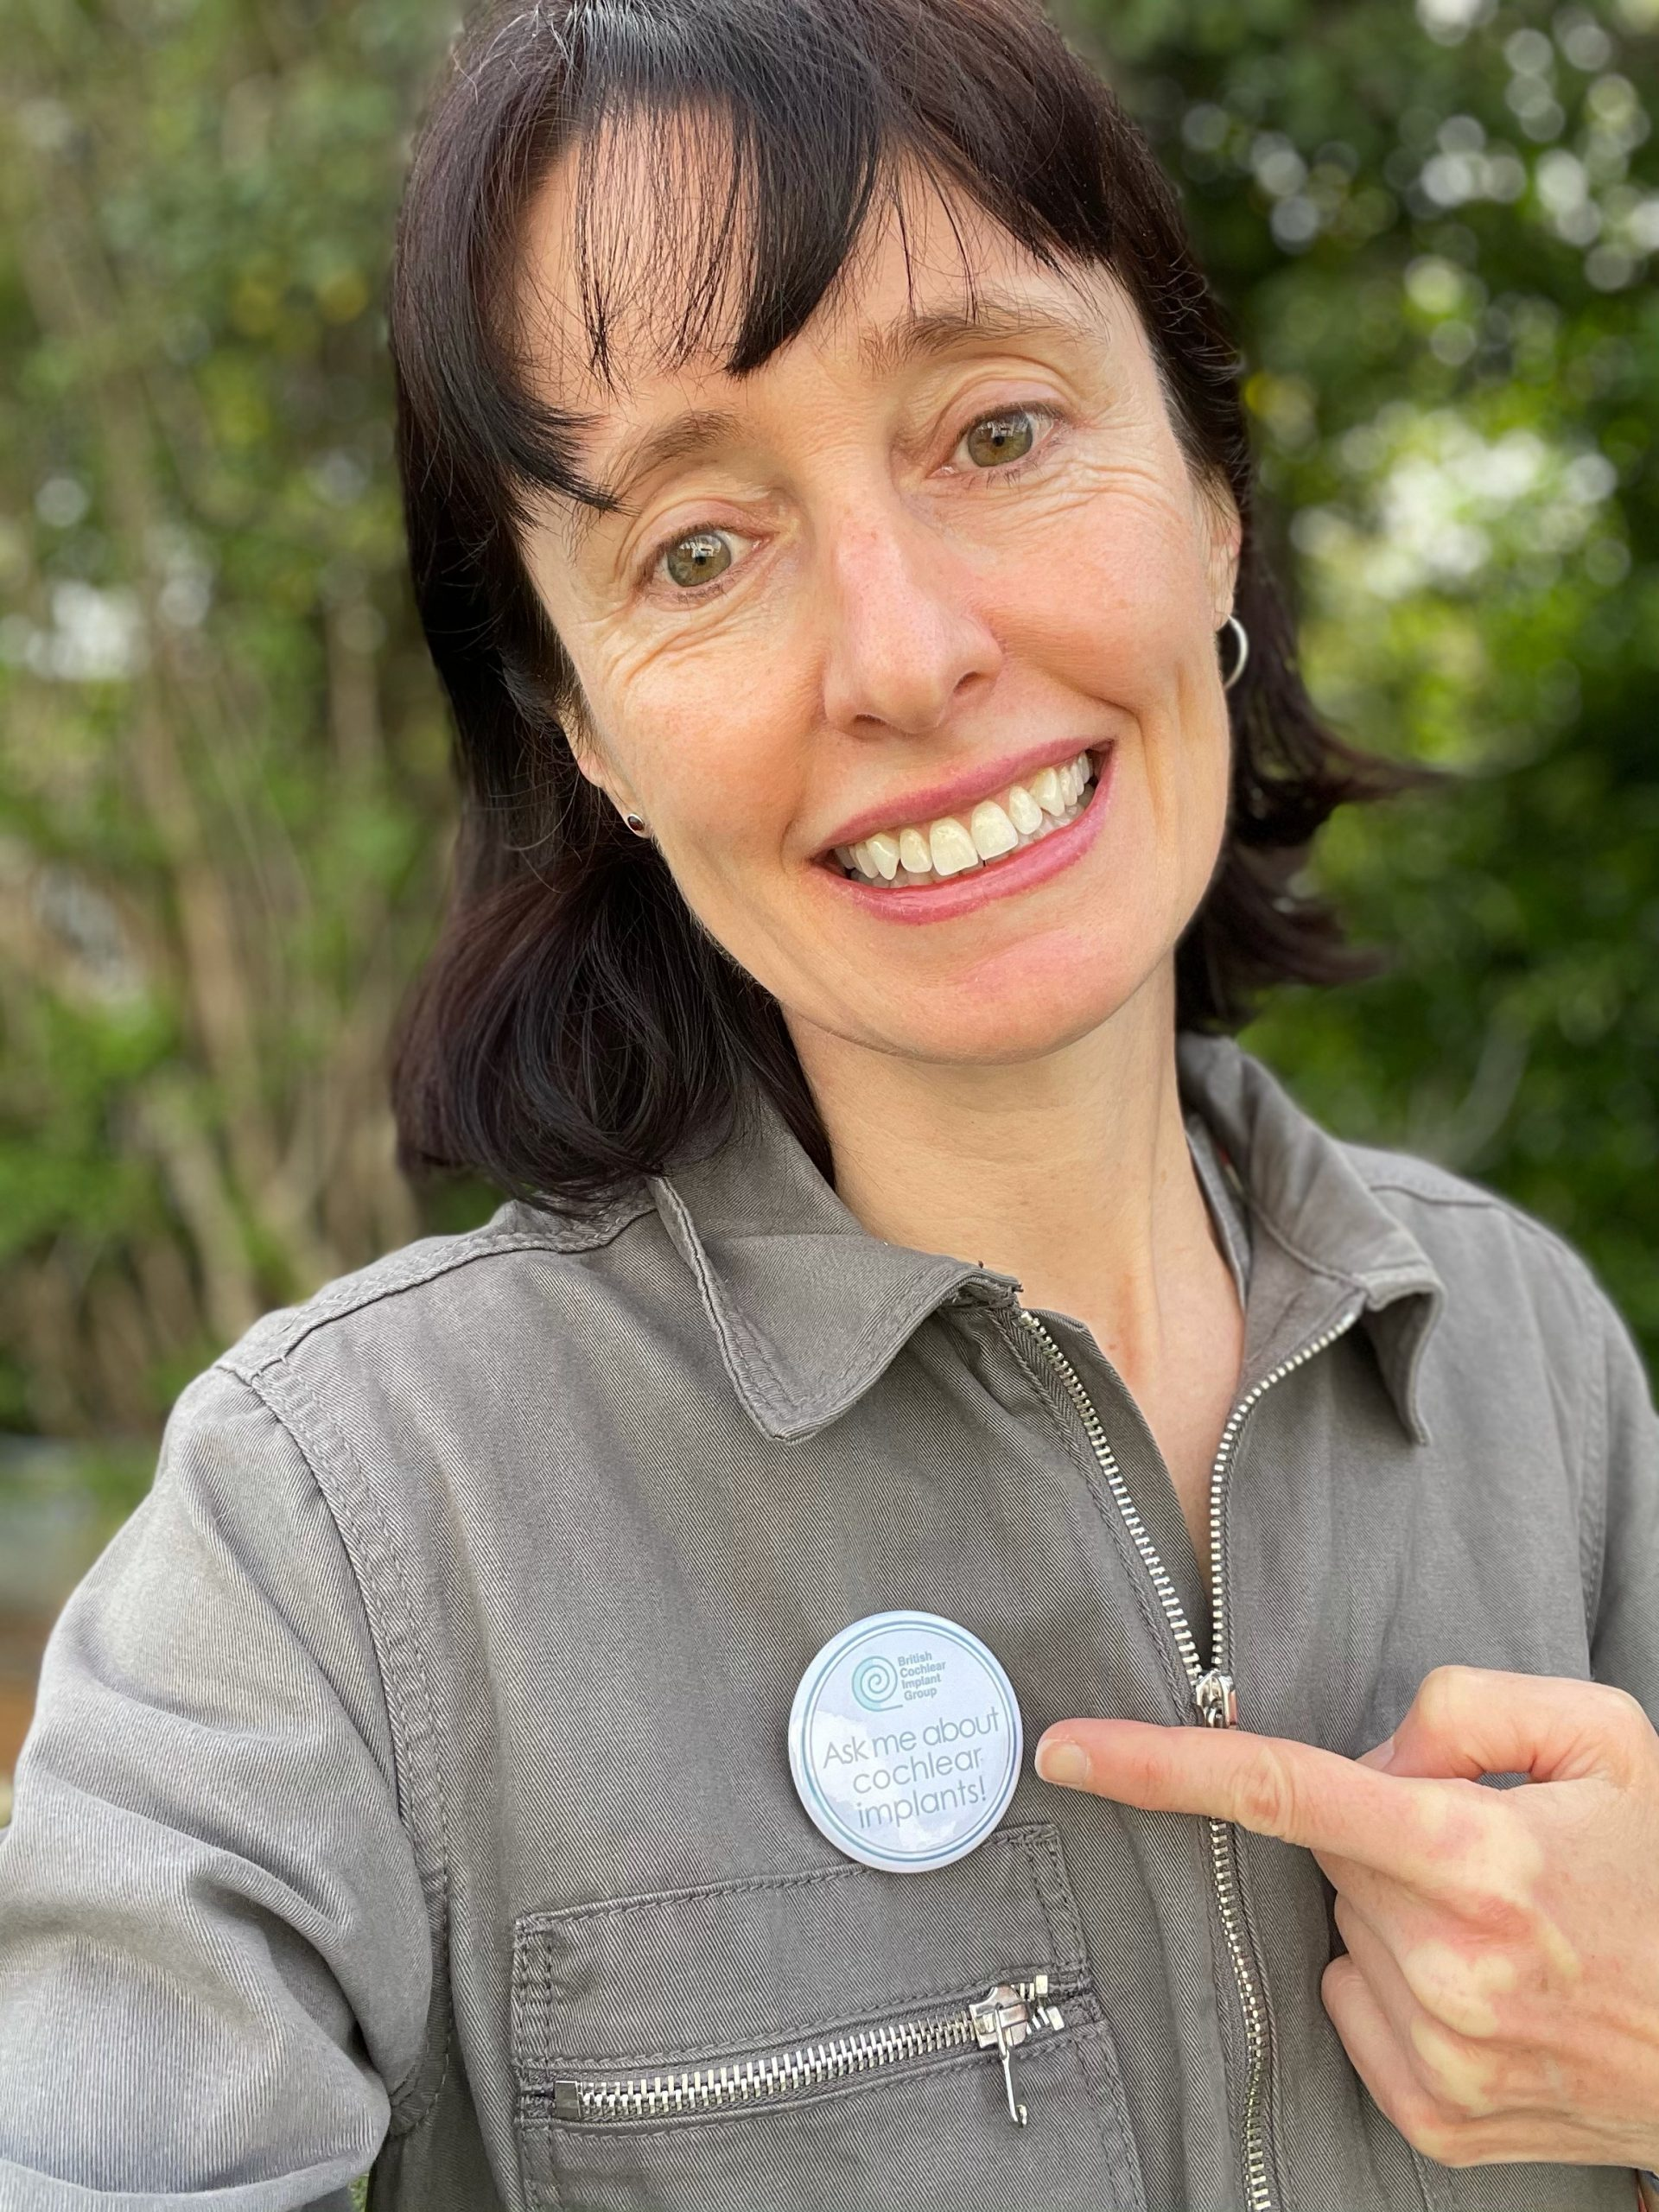 Helen Cullington, Chair of BCIG, UK,  wears her badge – ask me about cochlear implants!